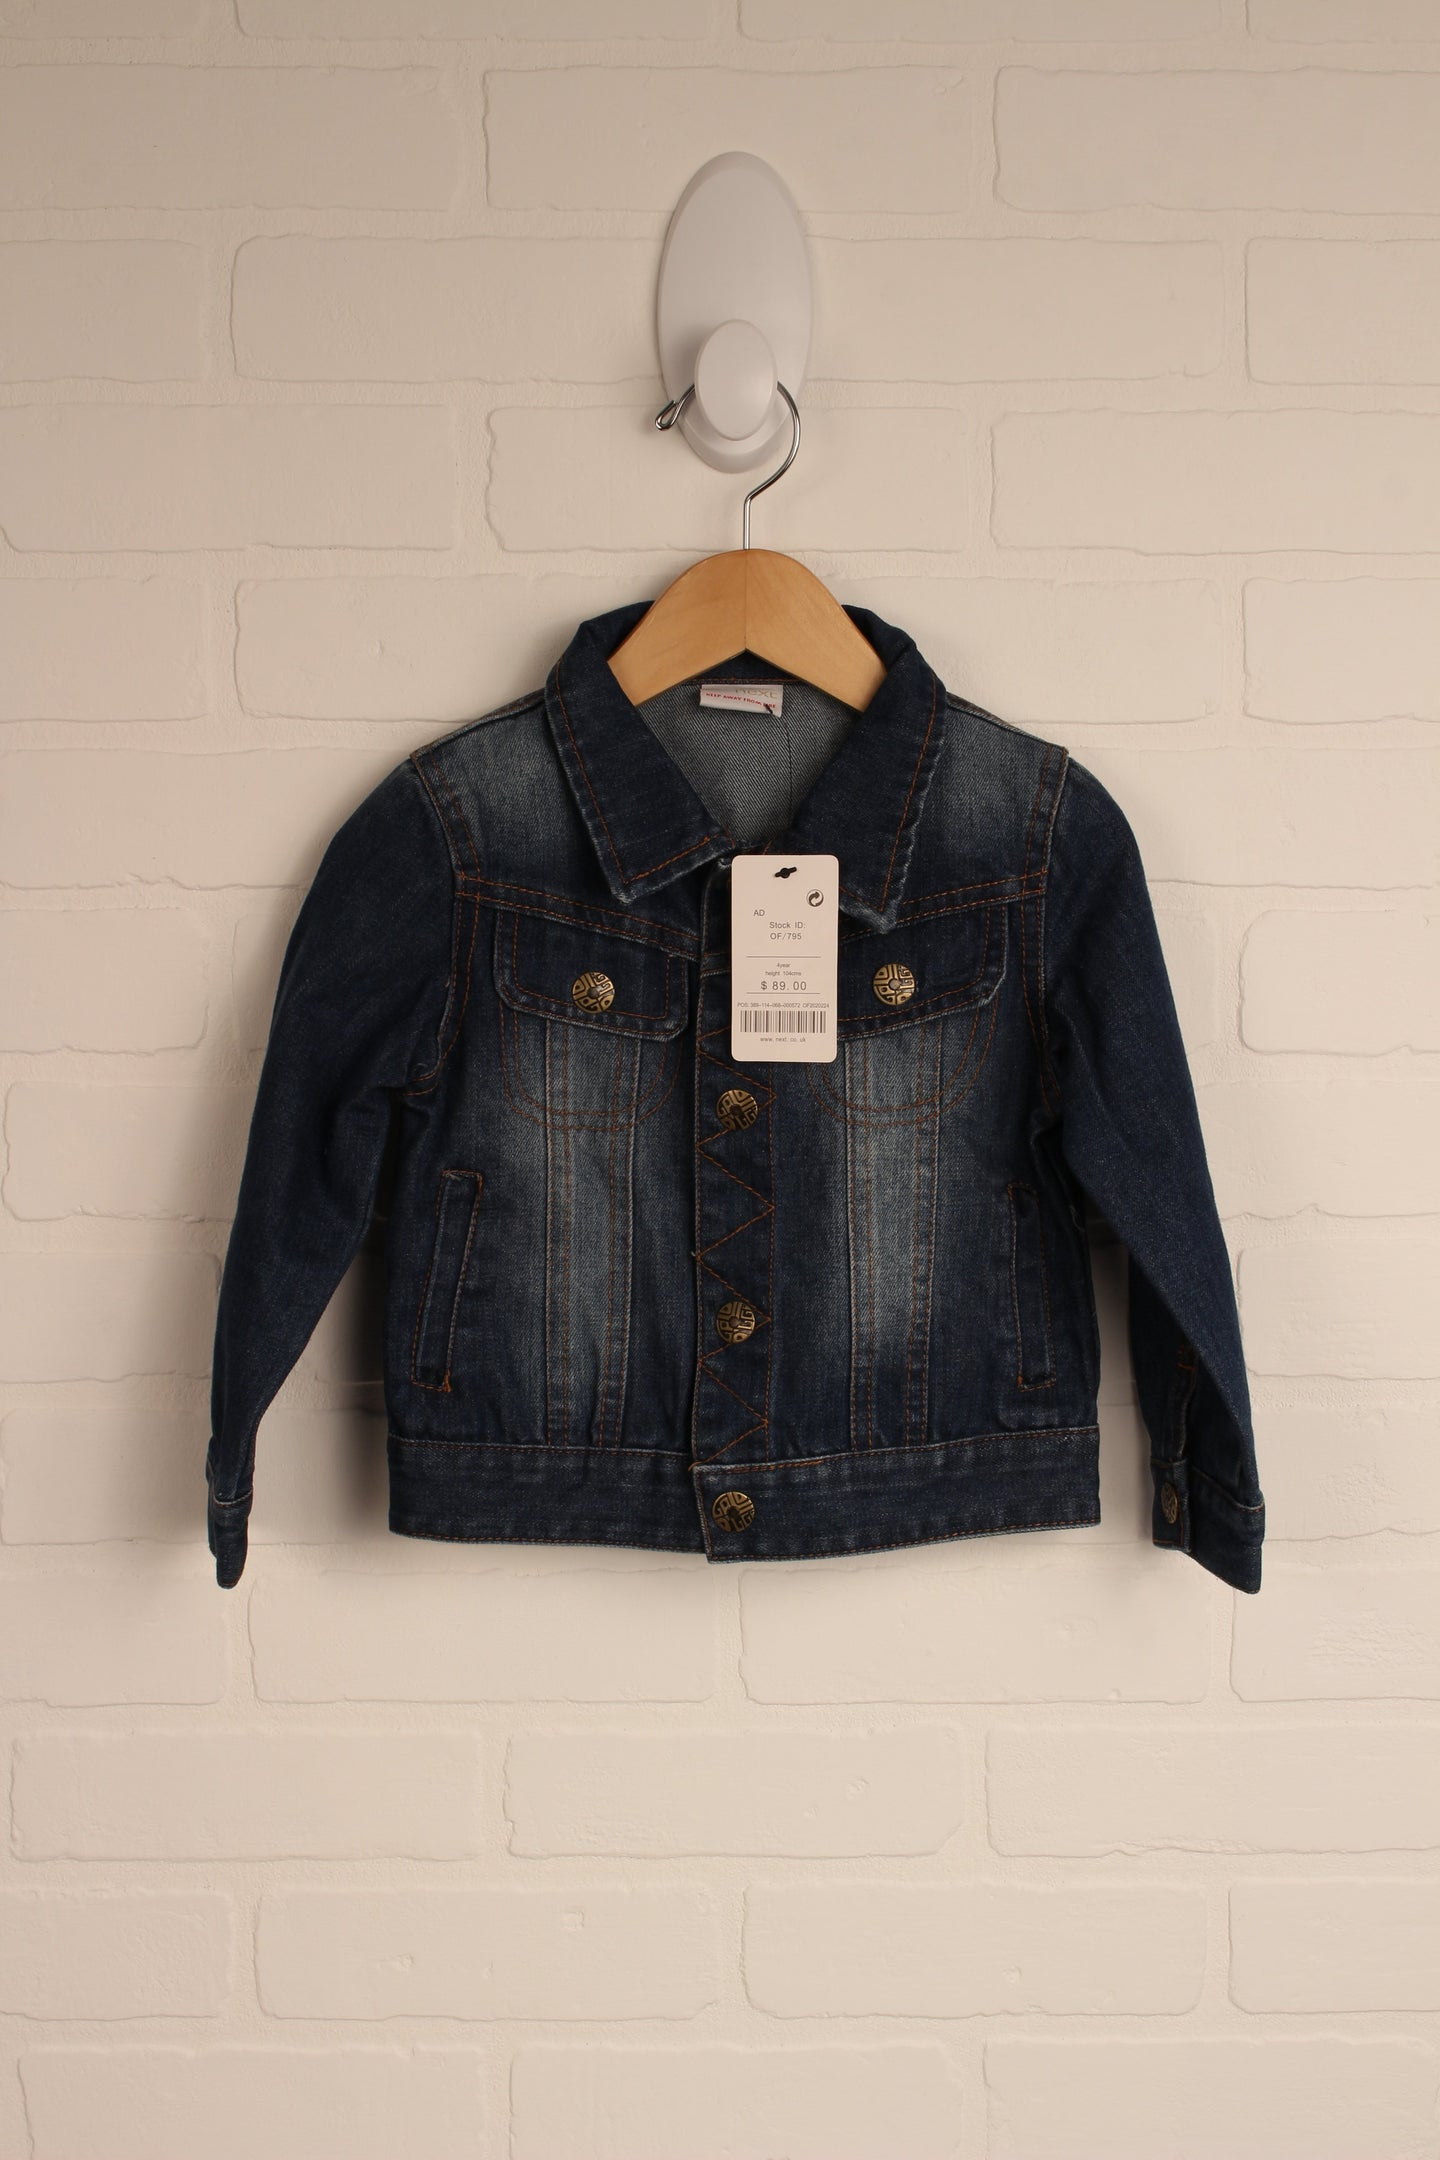 NWT Vintage Wash Denim Jacket (Size 4)